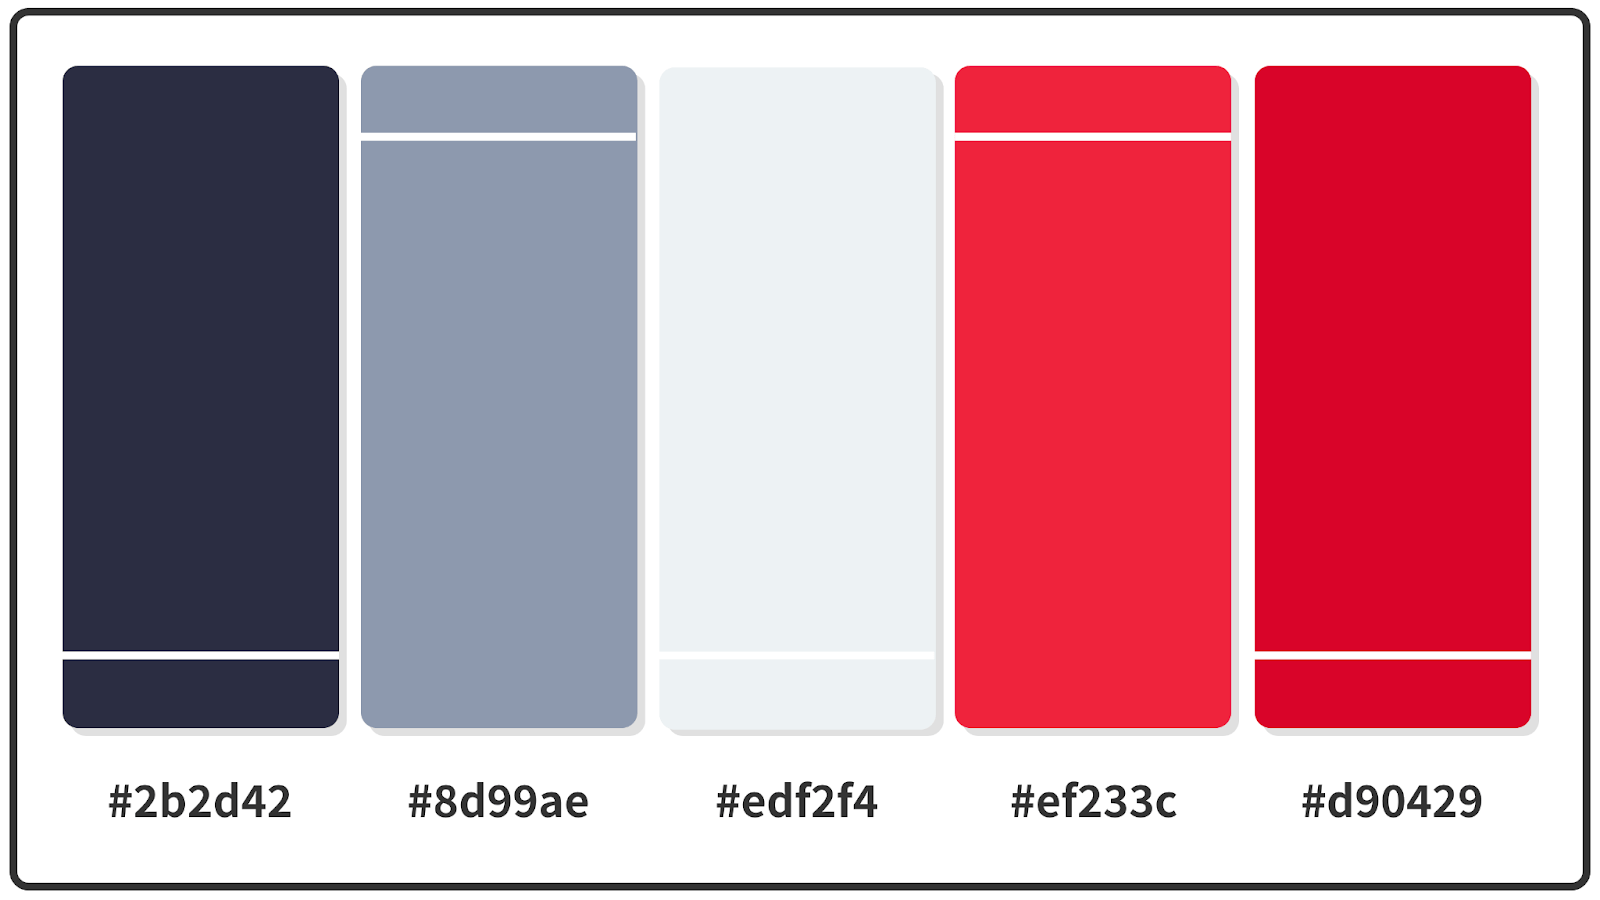 Imperial Red + Space Cadet Blue Color Palette 1